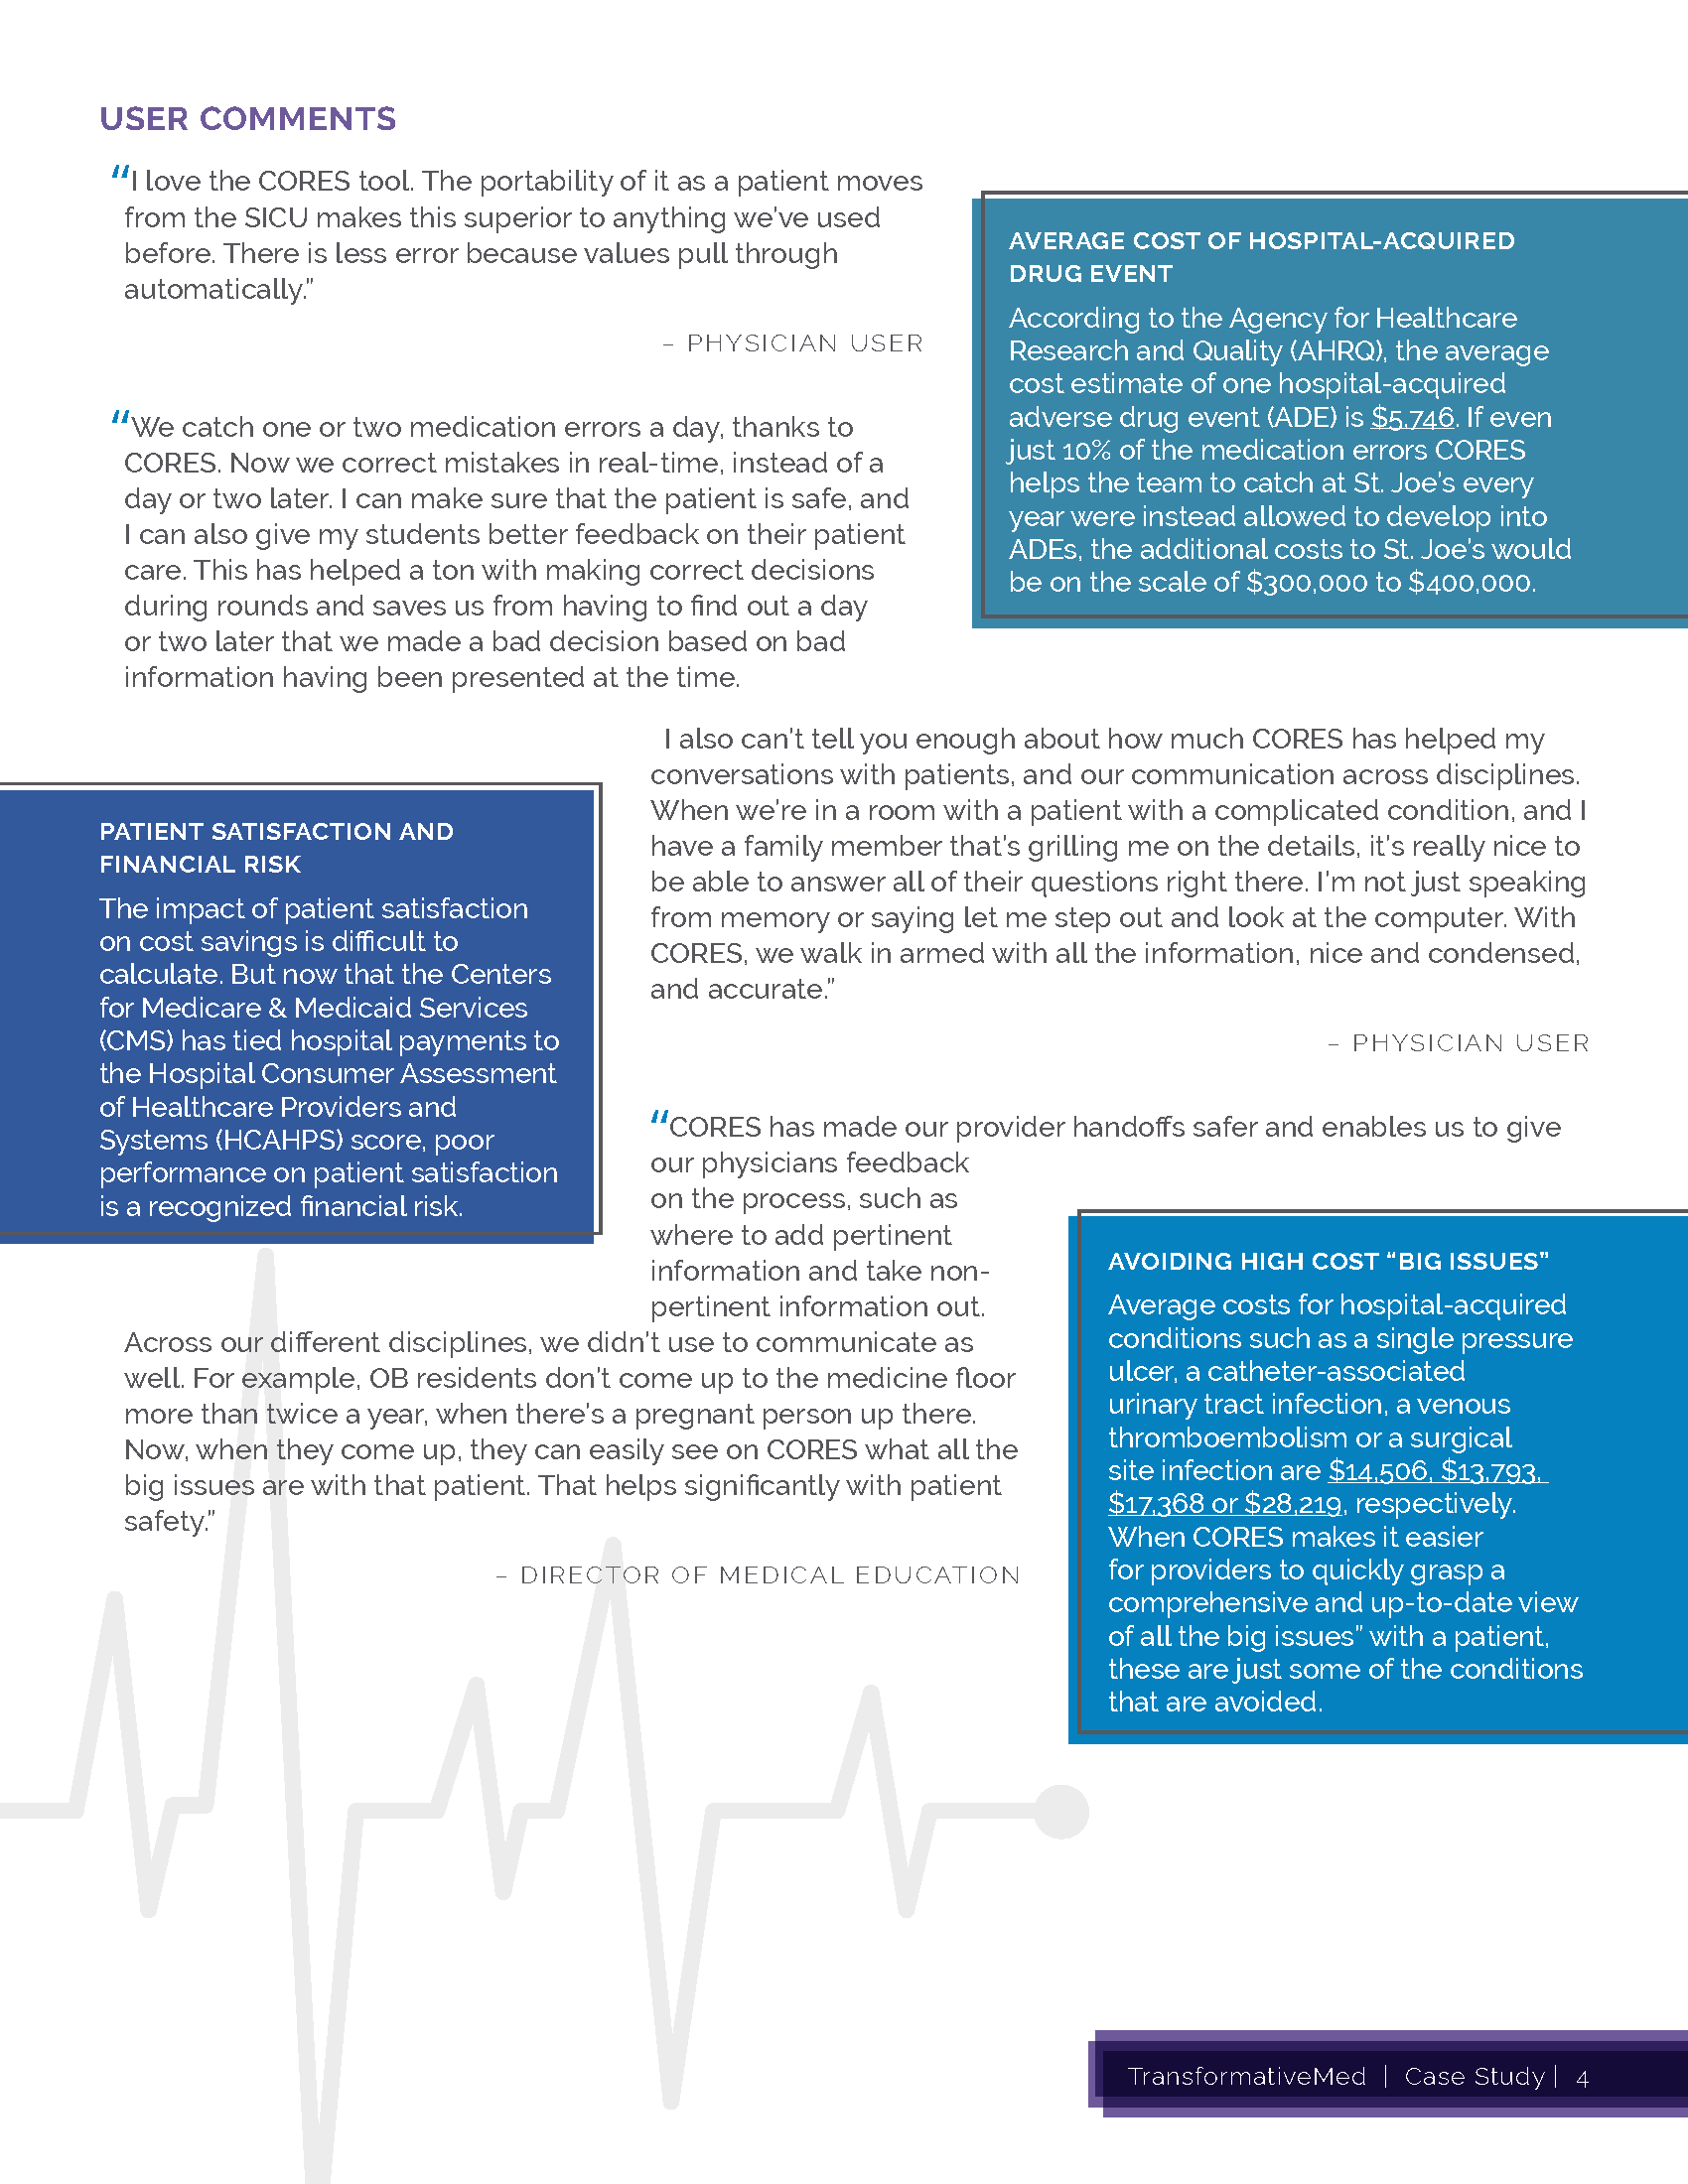 TransformativeMed-Case-Study-digital-simple_Page_04.png